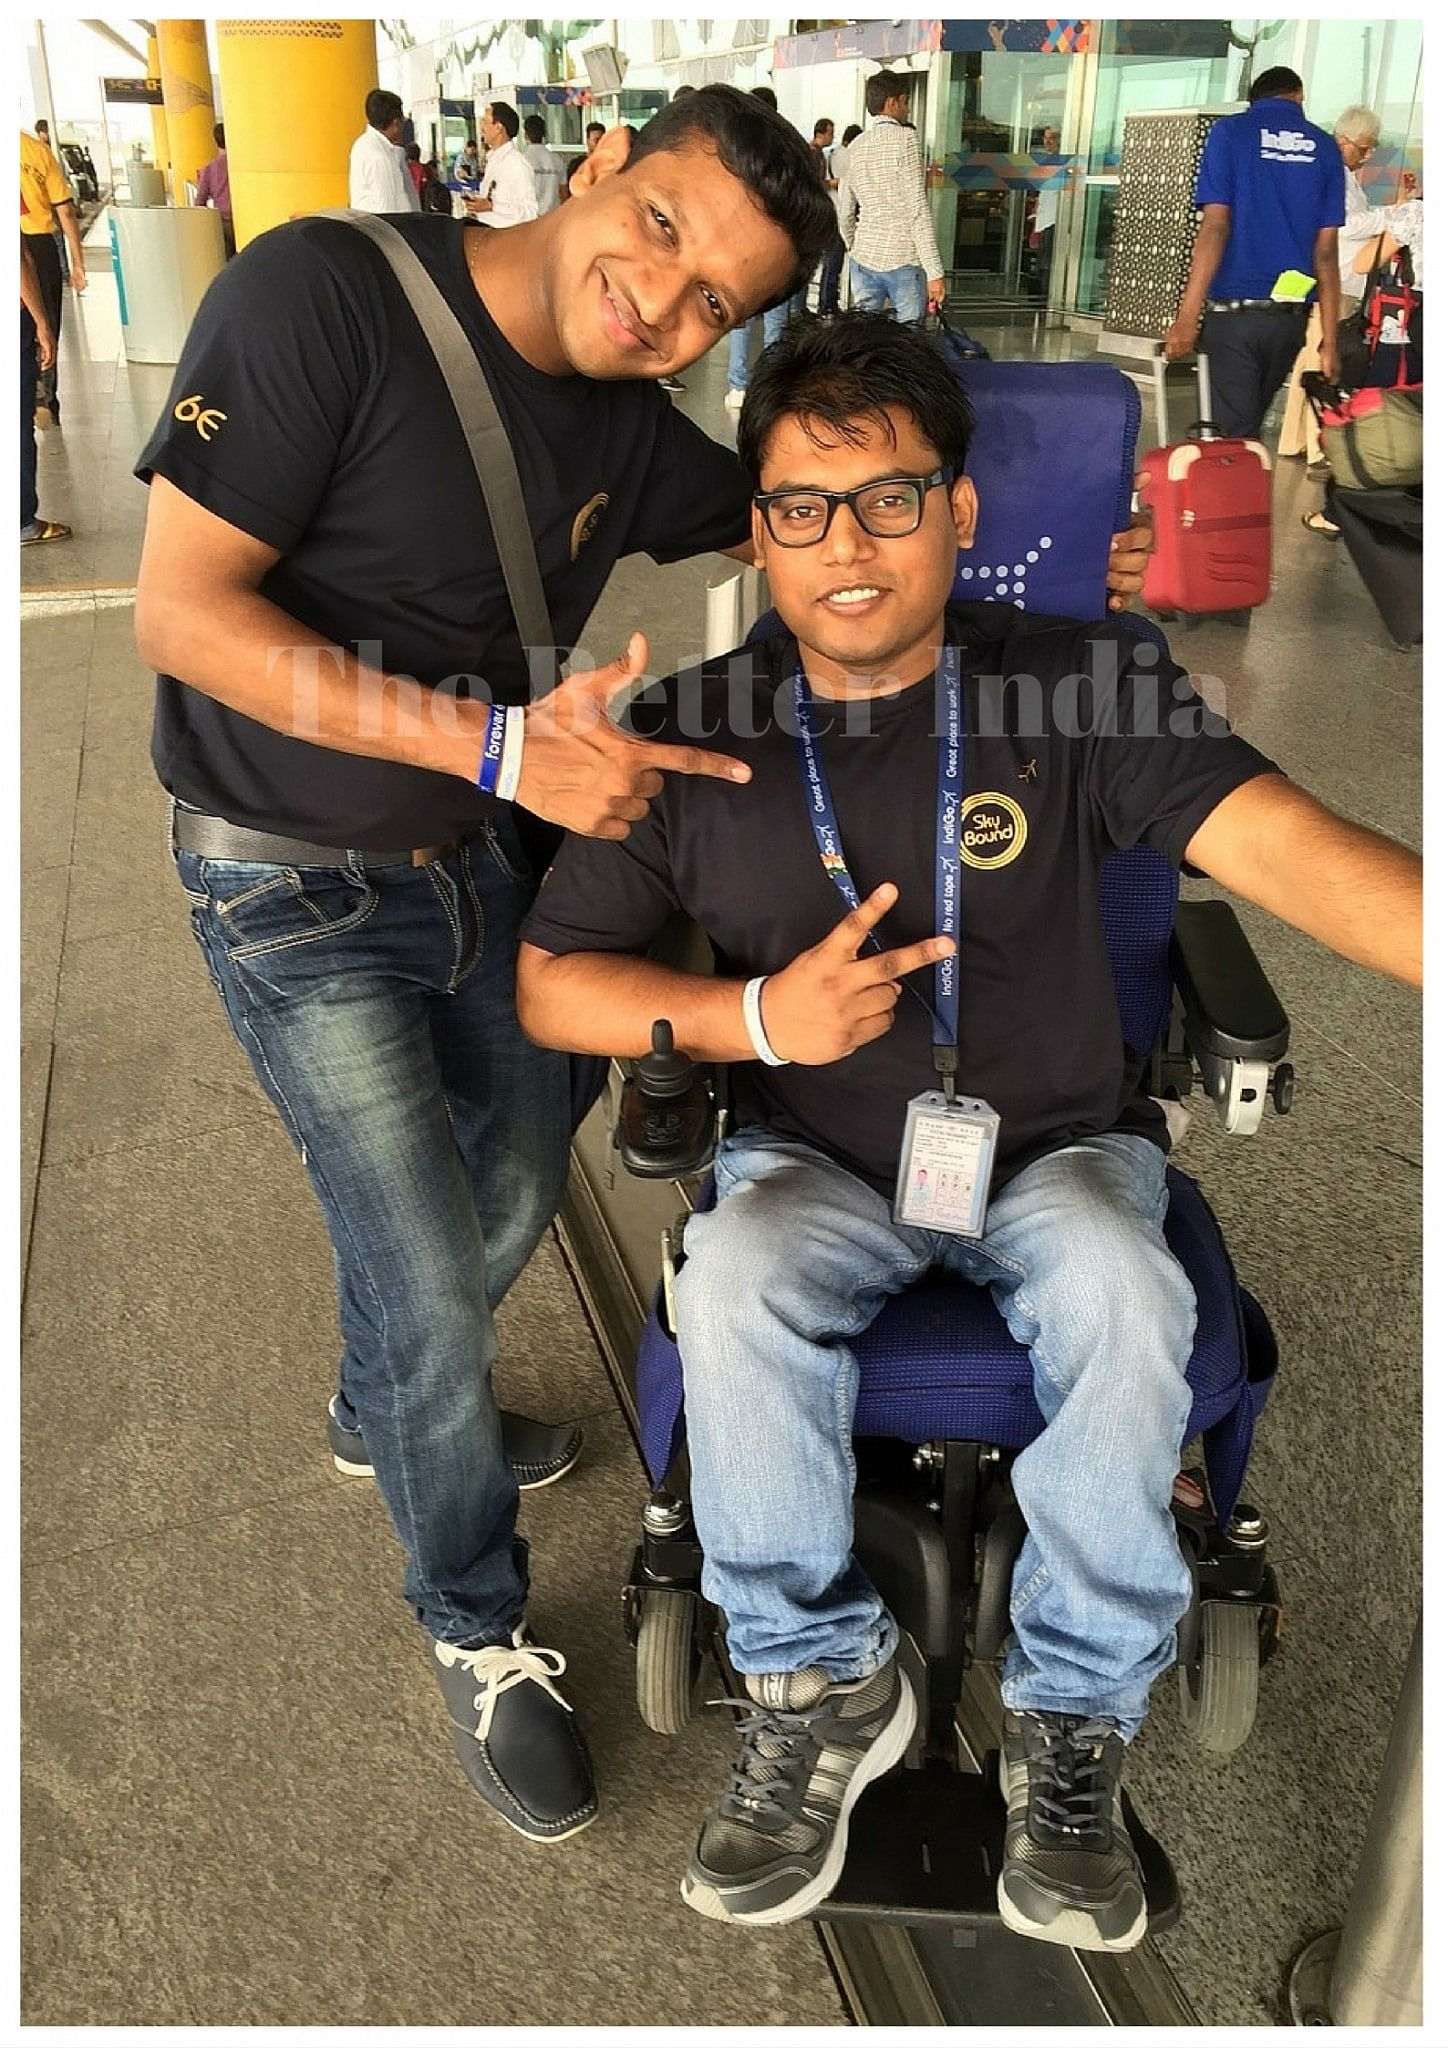 In jut a few months, Sandeep has impressed everyone at his work with hid positive attitude.